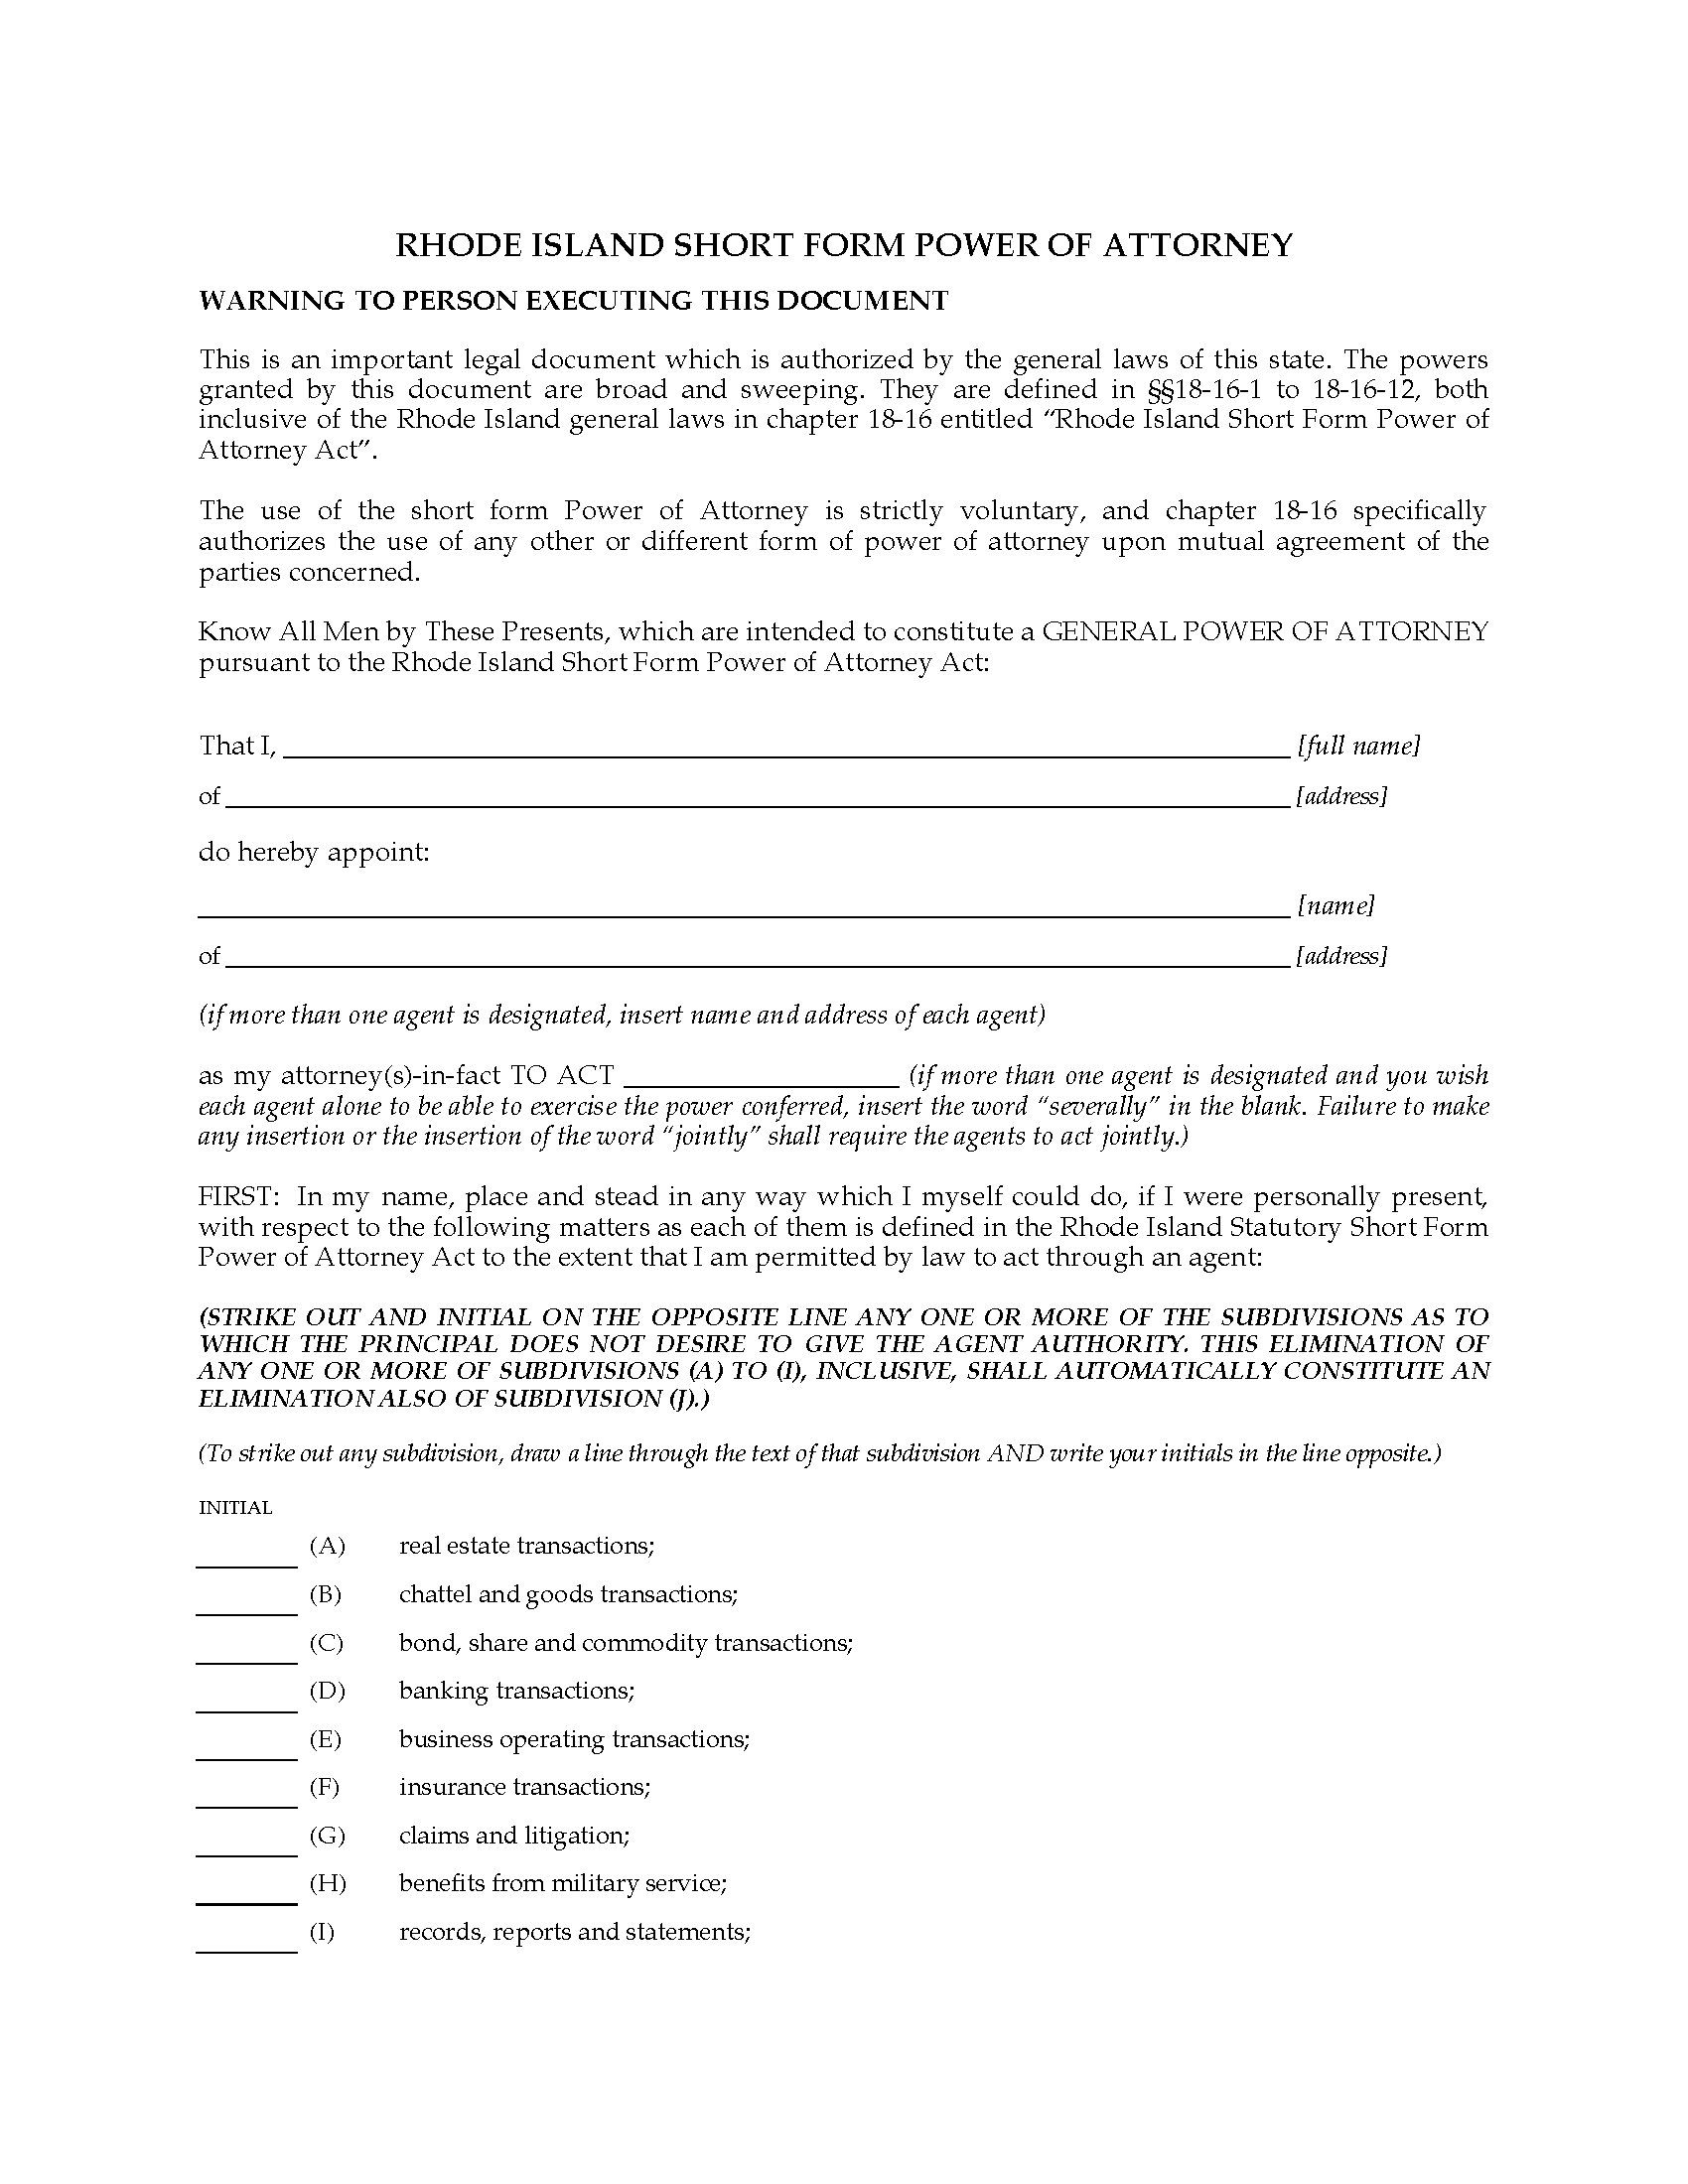 Rhode Island Short Form Power Of Attorney Legal Forms